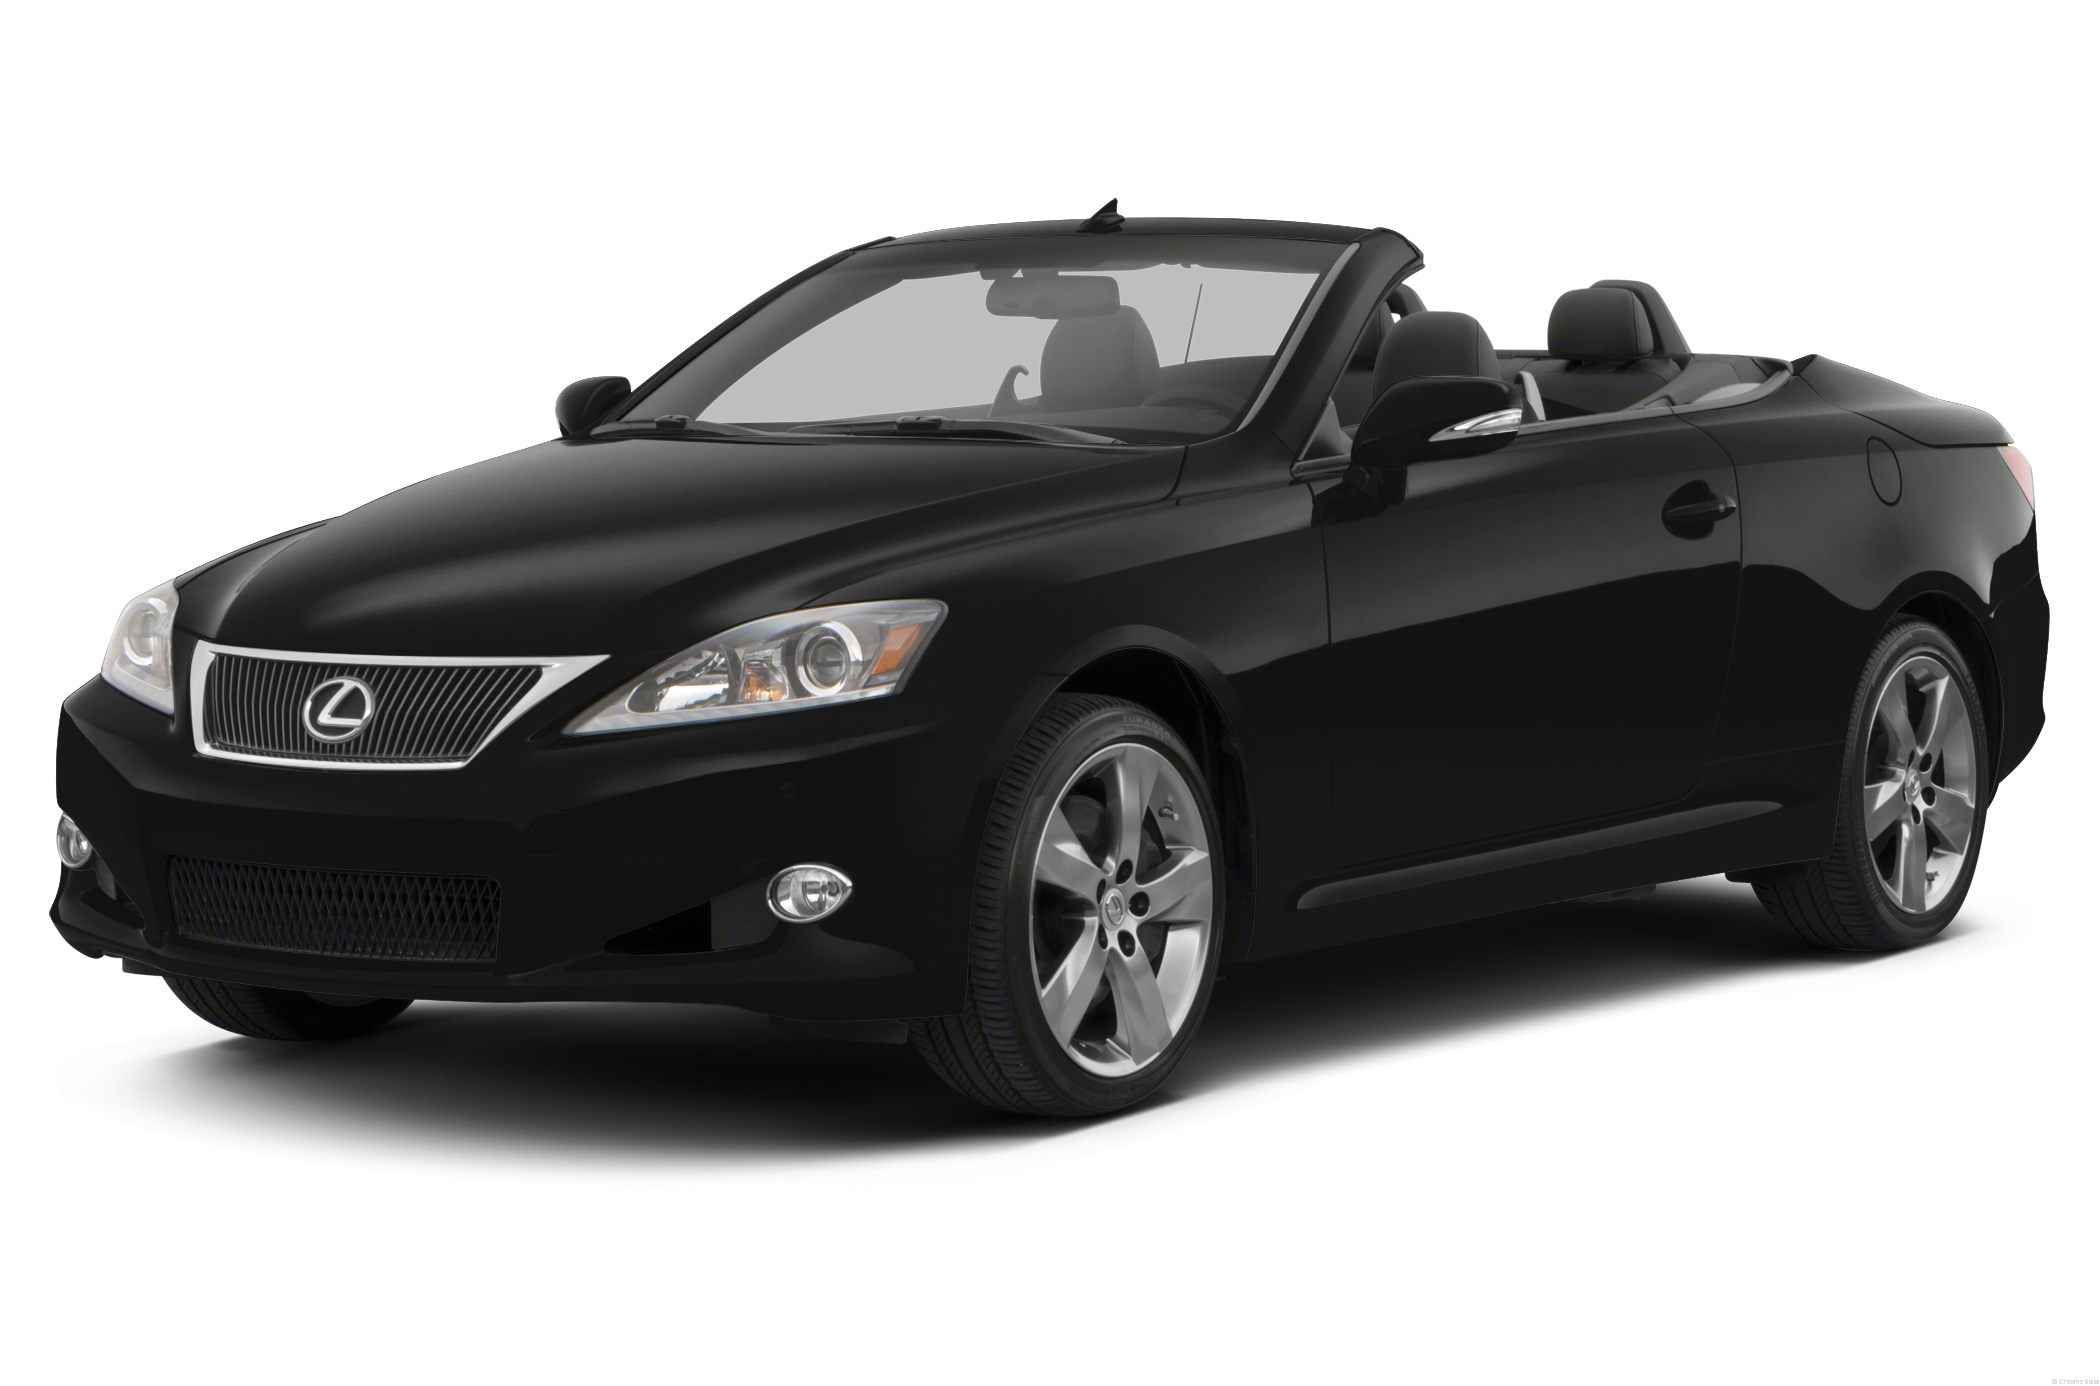 2013 lexus is 350 convertible demanding attention at. Black Bedroom Furniture Sets. Home Design Ideas